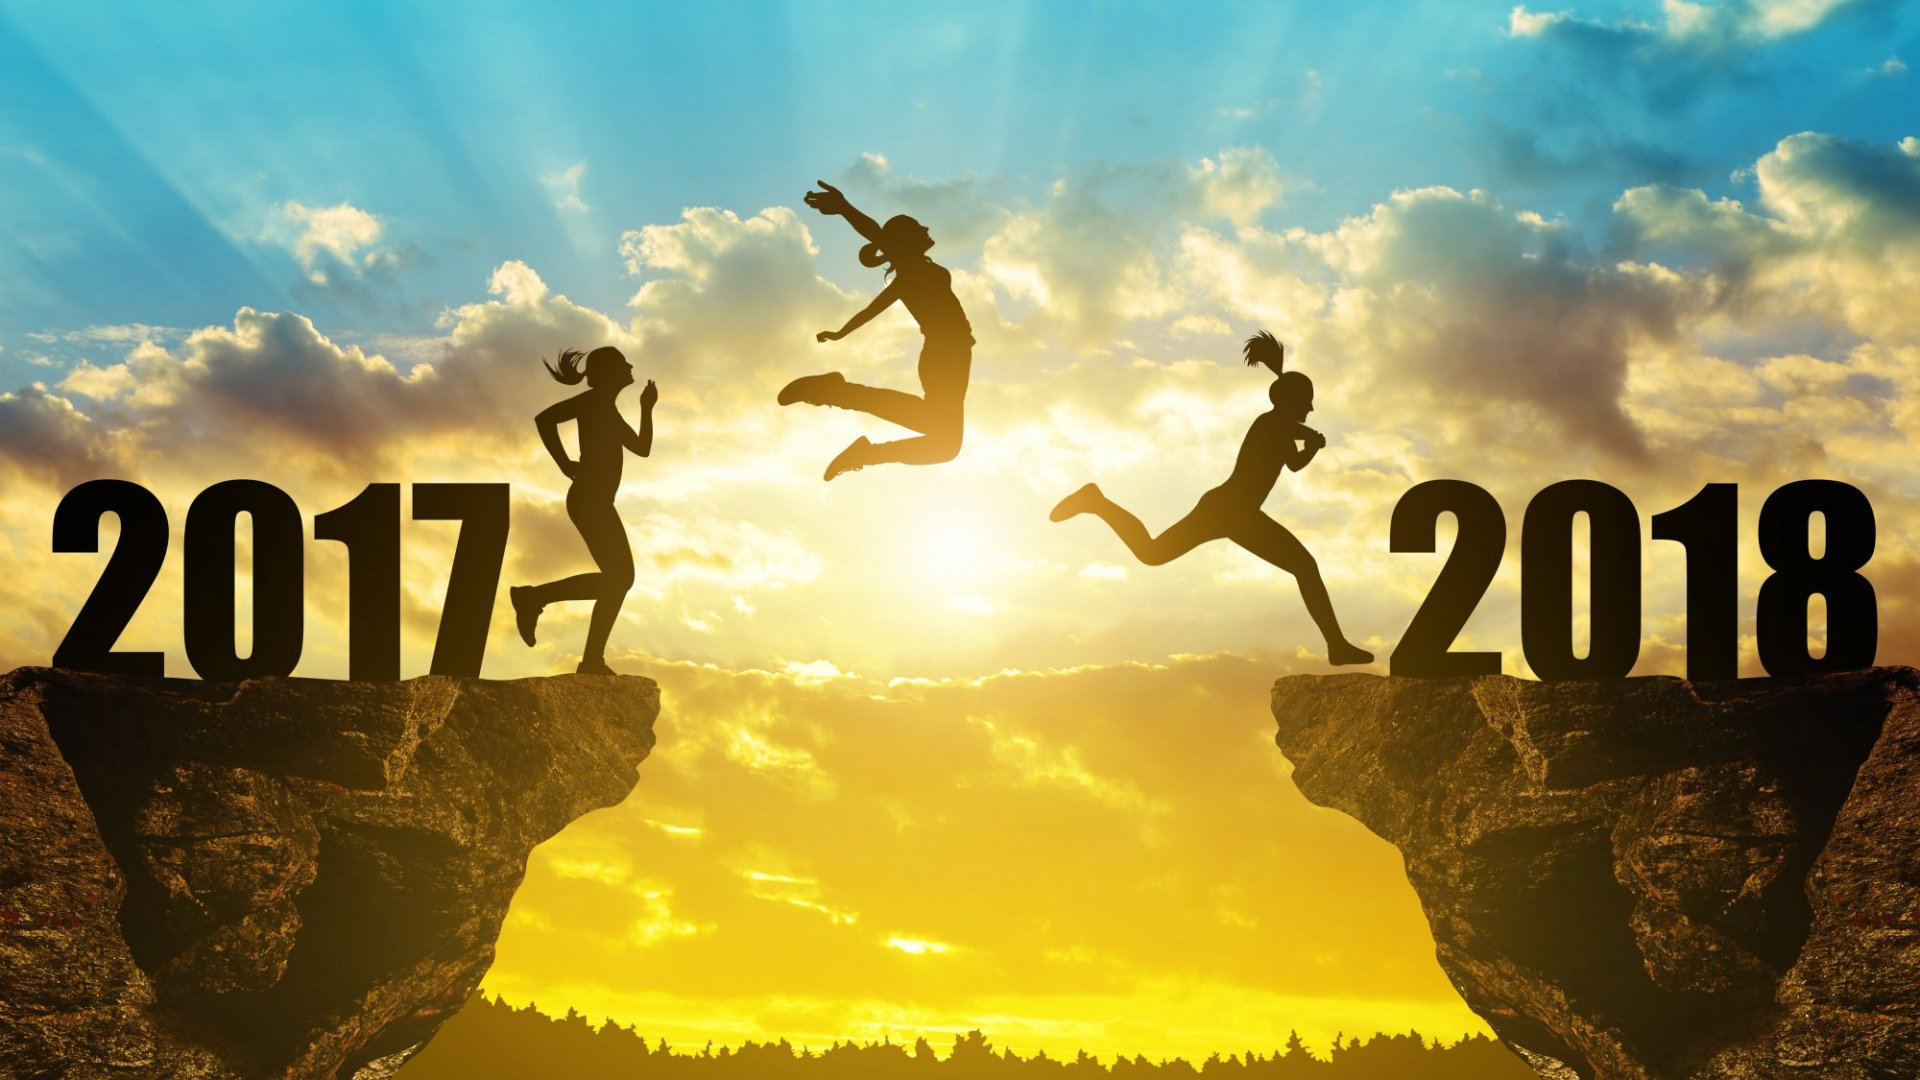 Want More Luck in 2018?  Follow These 3 Simple Rules